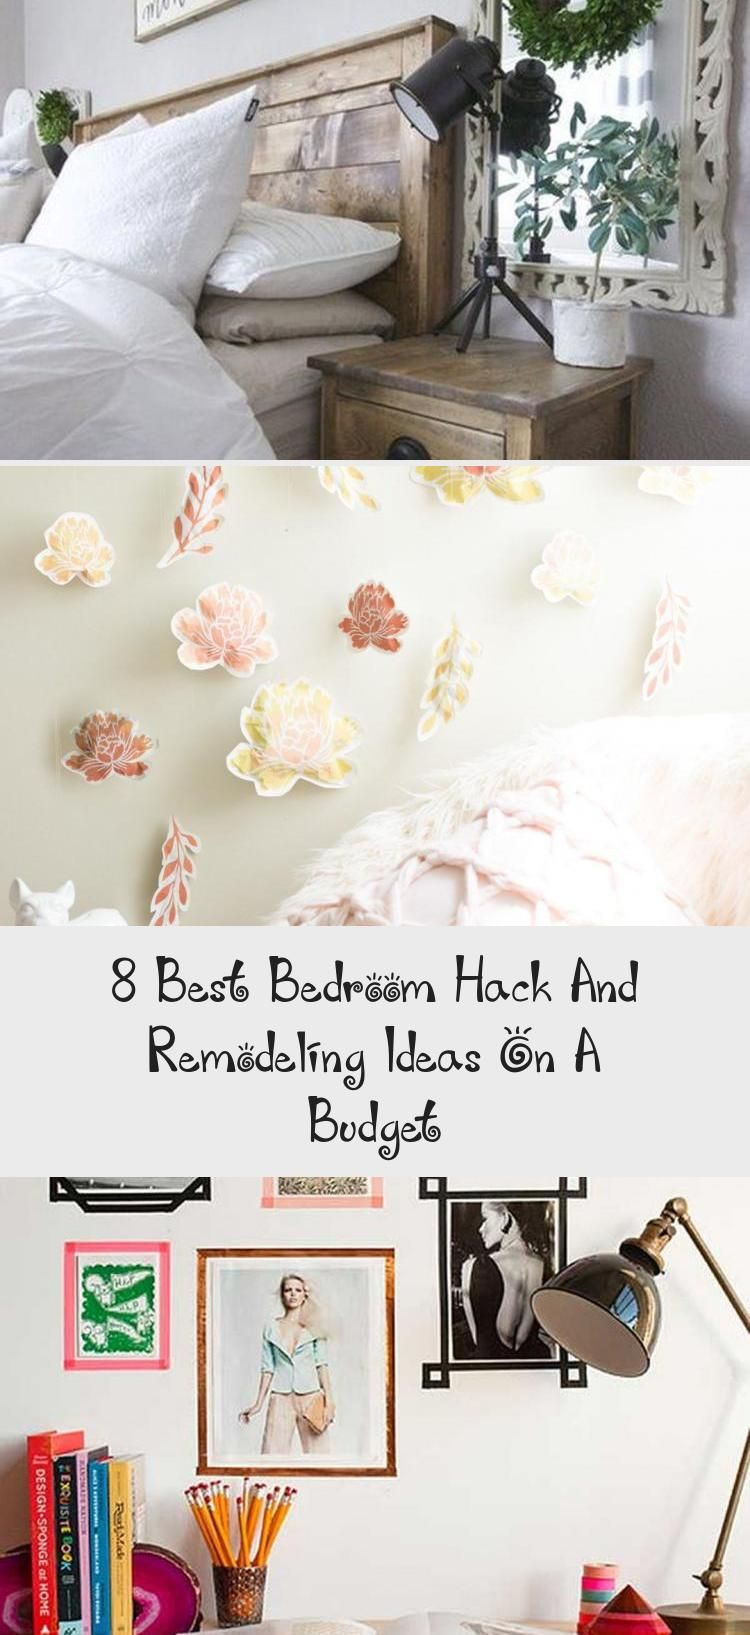 8 Best Bedroom Hack And Remodeling Ideas On A Budget – Decor